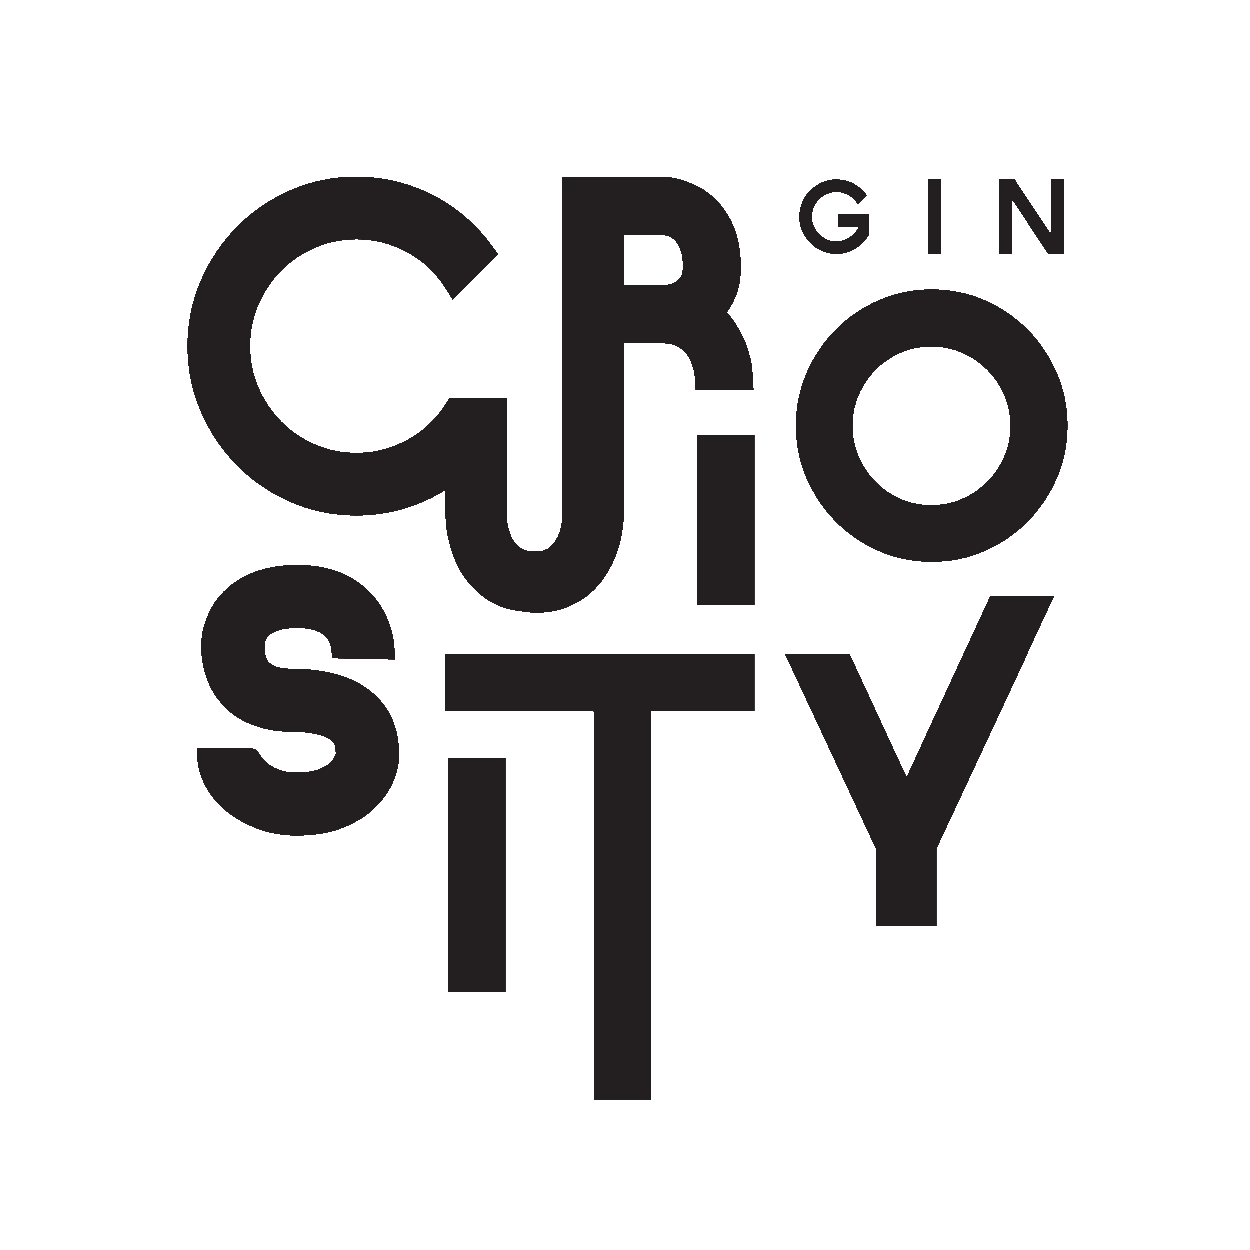 New CuriosityGin-Logo-Lockup - Transparent Background